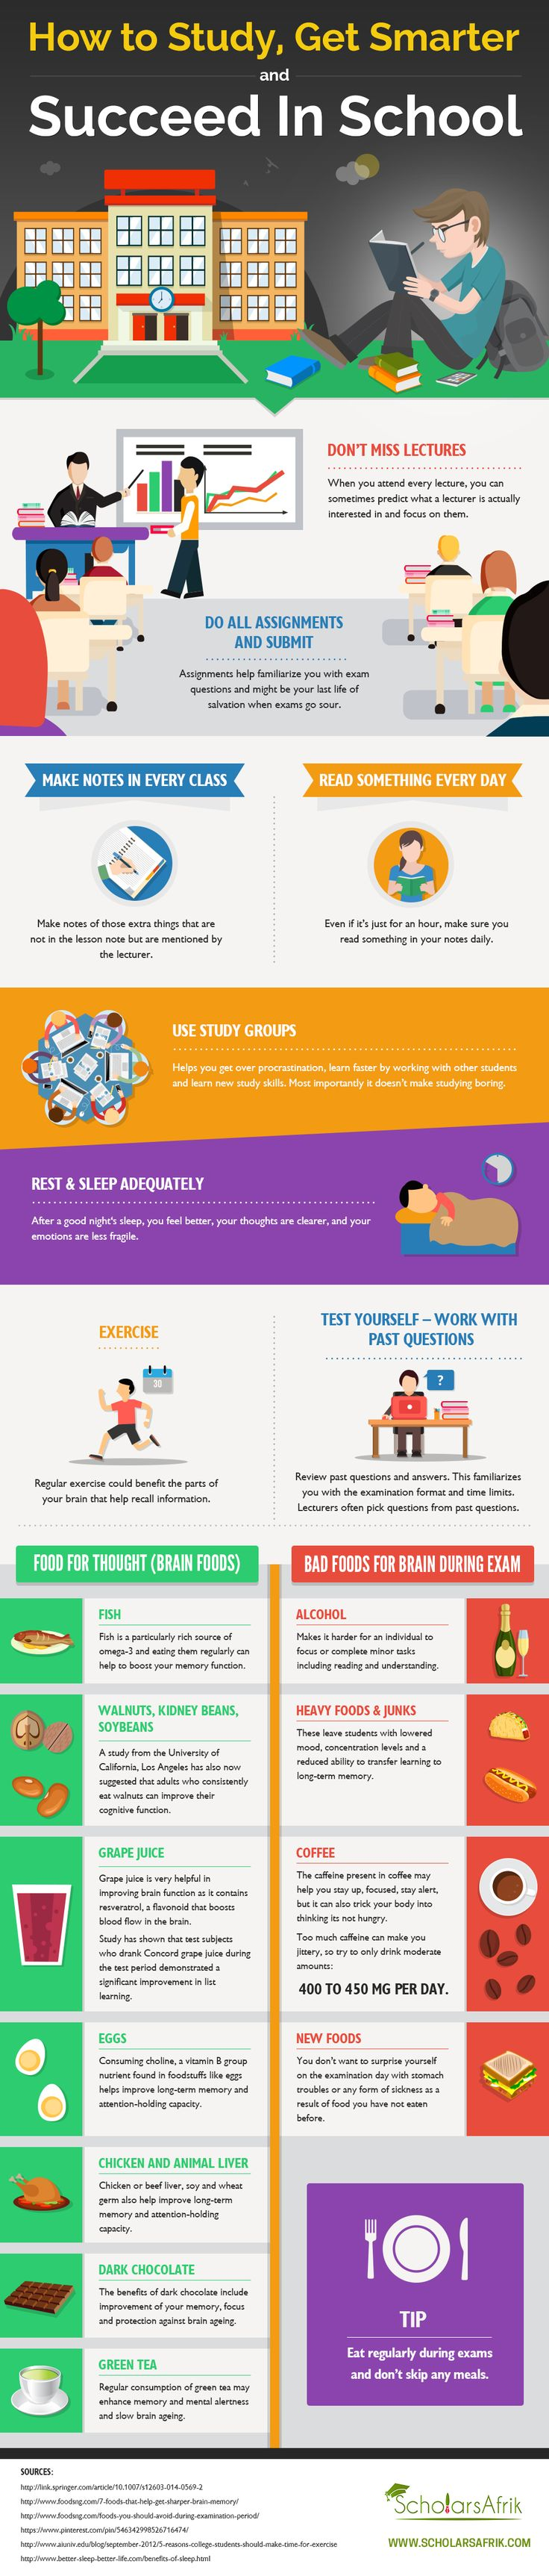 How to Study, Get Smarter & Succeed in School Infographic - http://elearninginfographics.com/how-to-study-get-smarter-succeed-in-school-infographic/